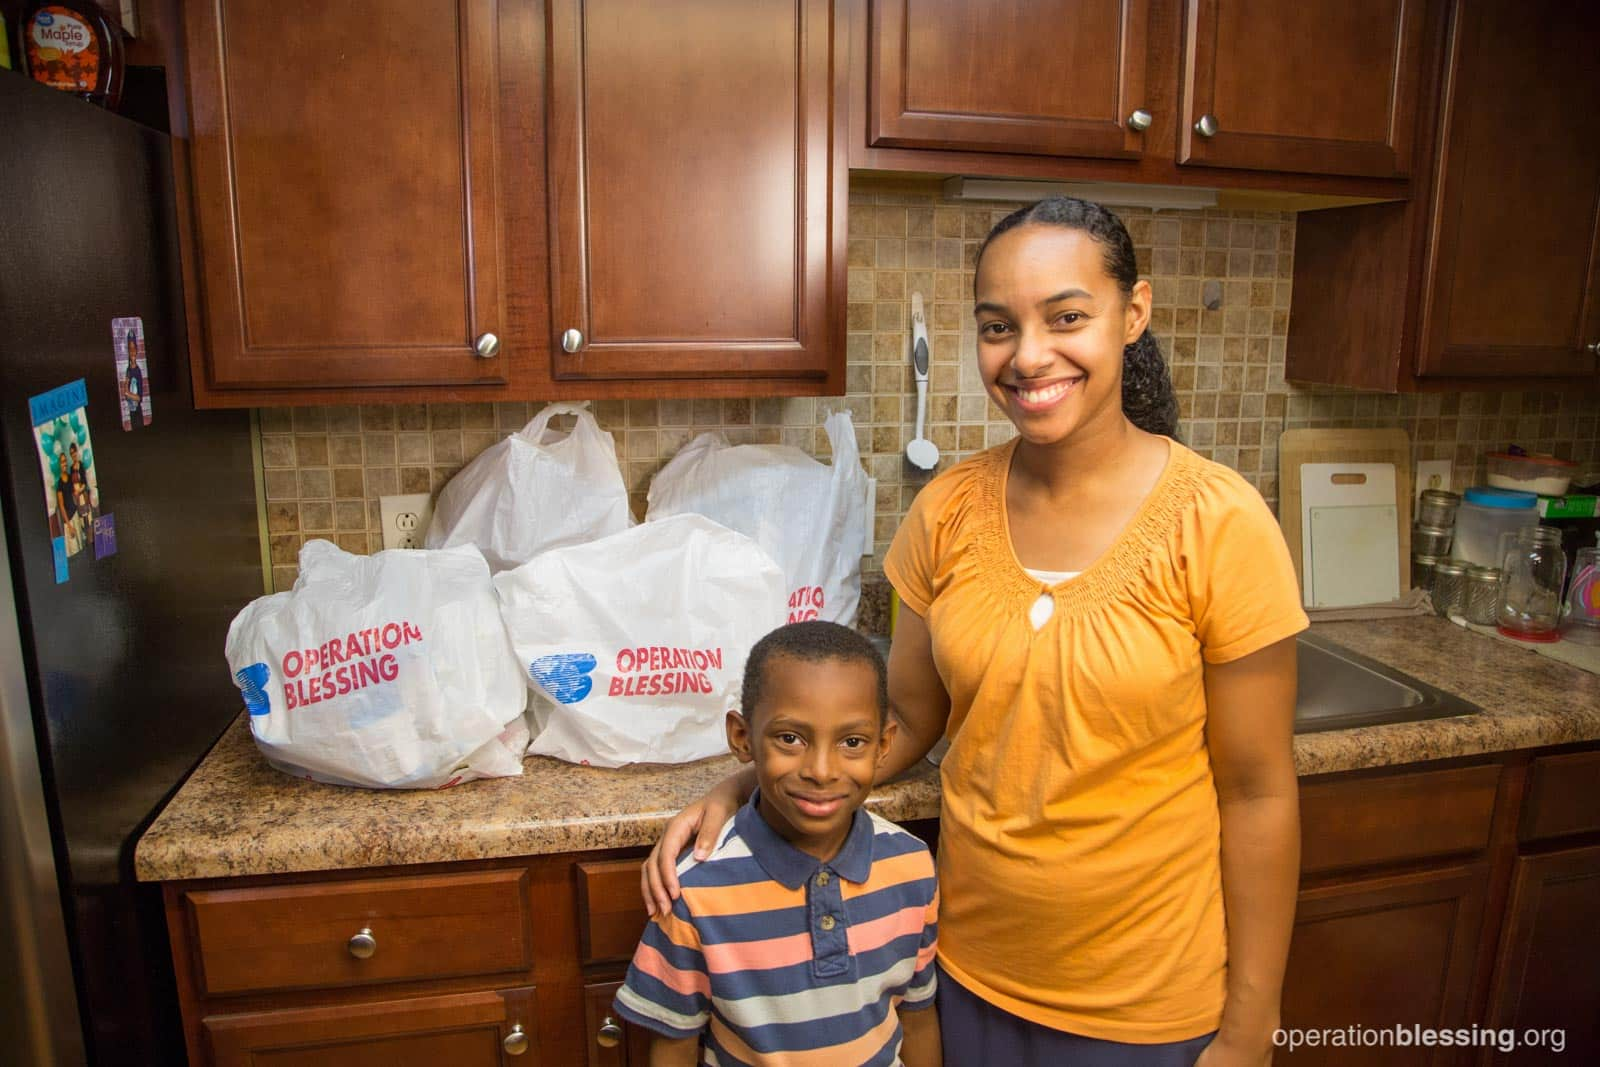 Erika stands with her gymnastics loving son in front of the groceries from House of Blessing.